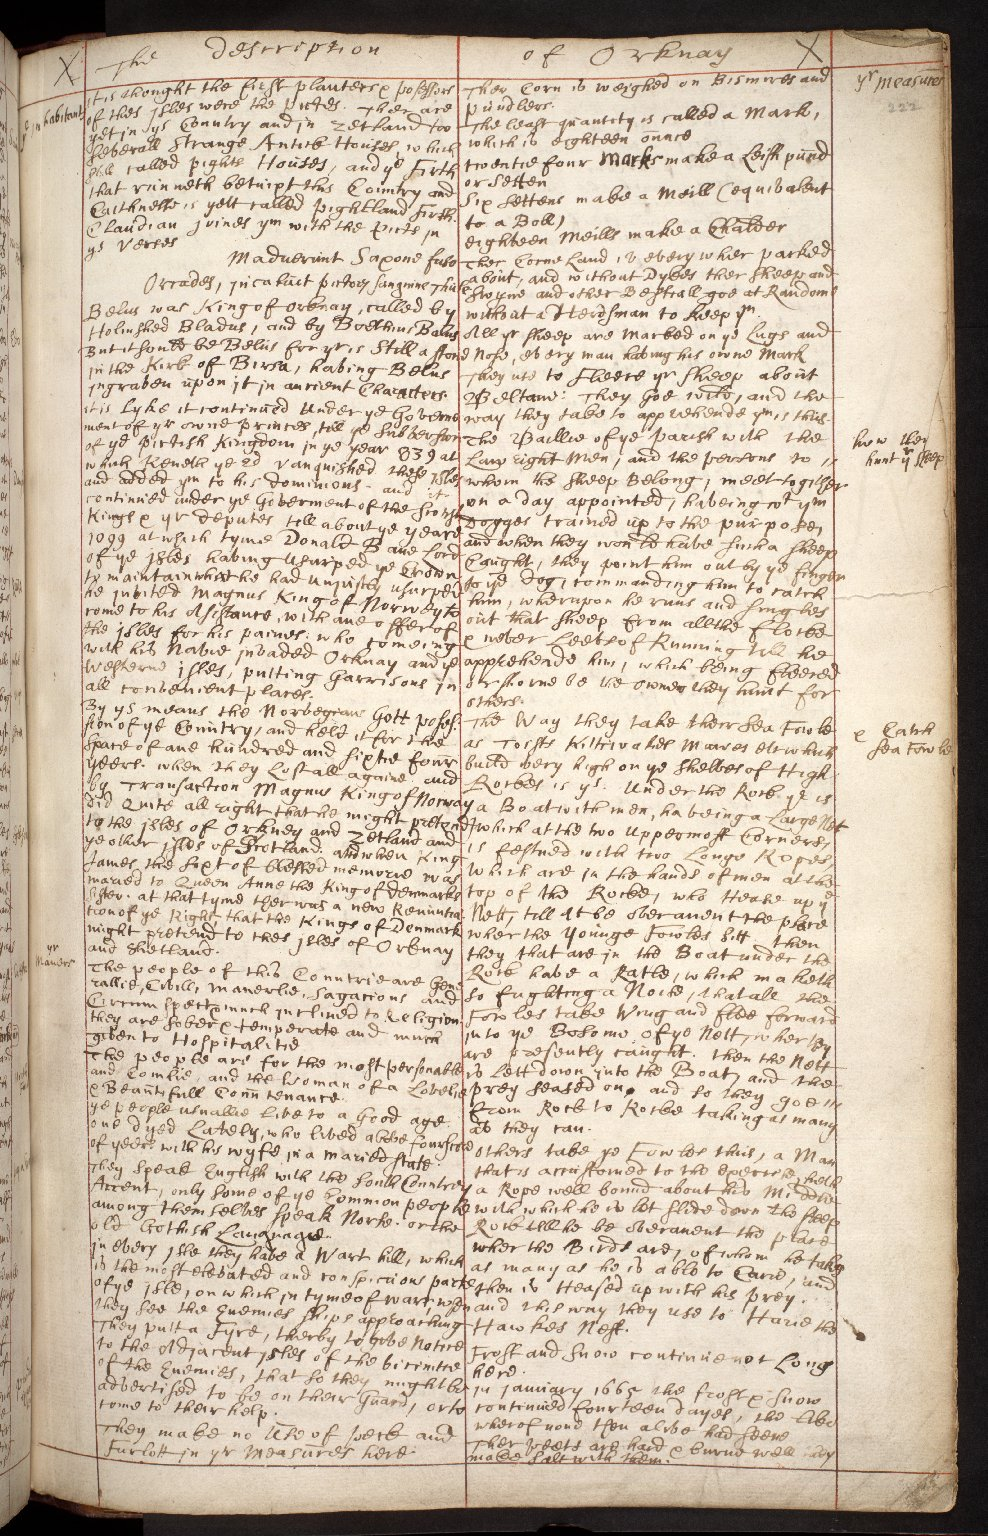 Atlas Scoticus, or a Description of Scotland Ancient and Modern. [241 of 259]